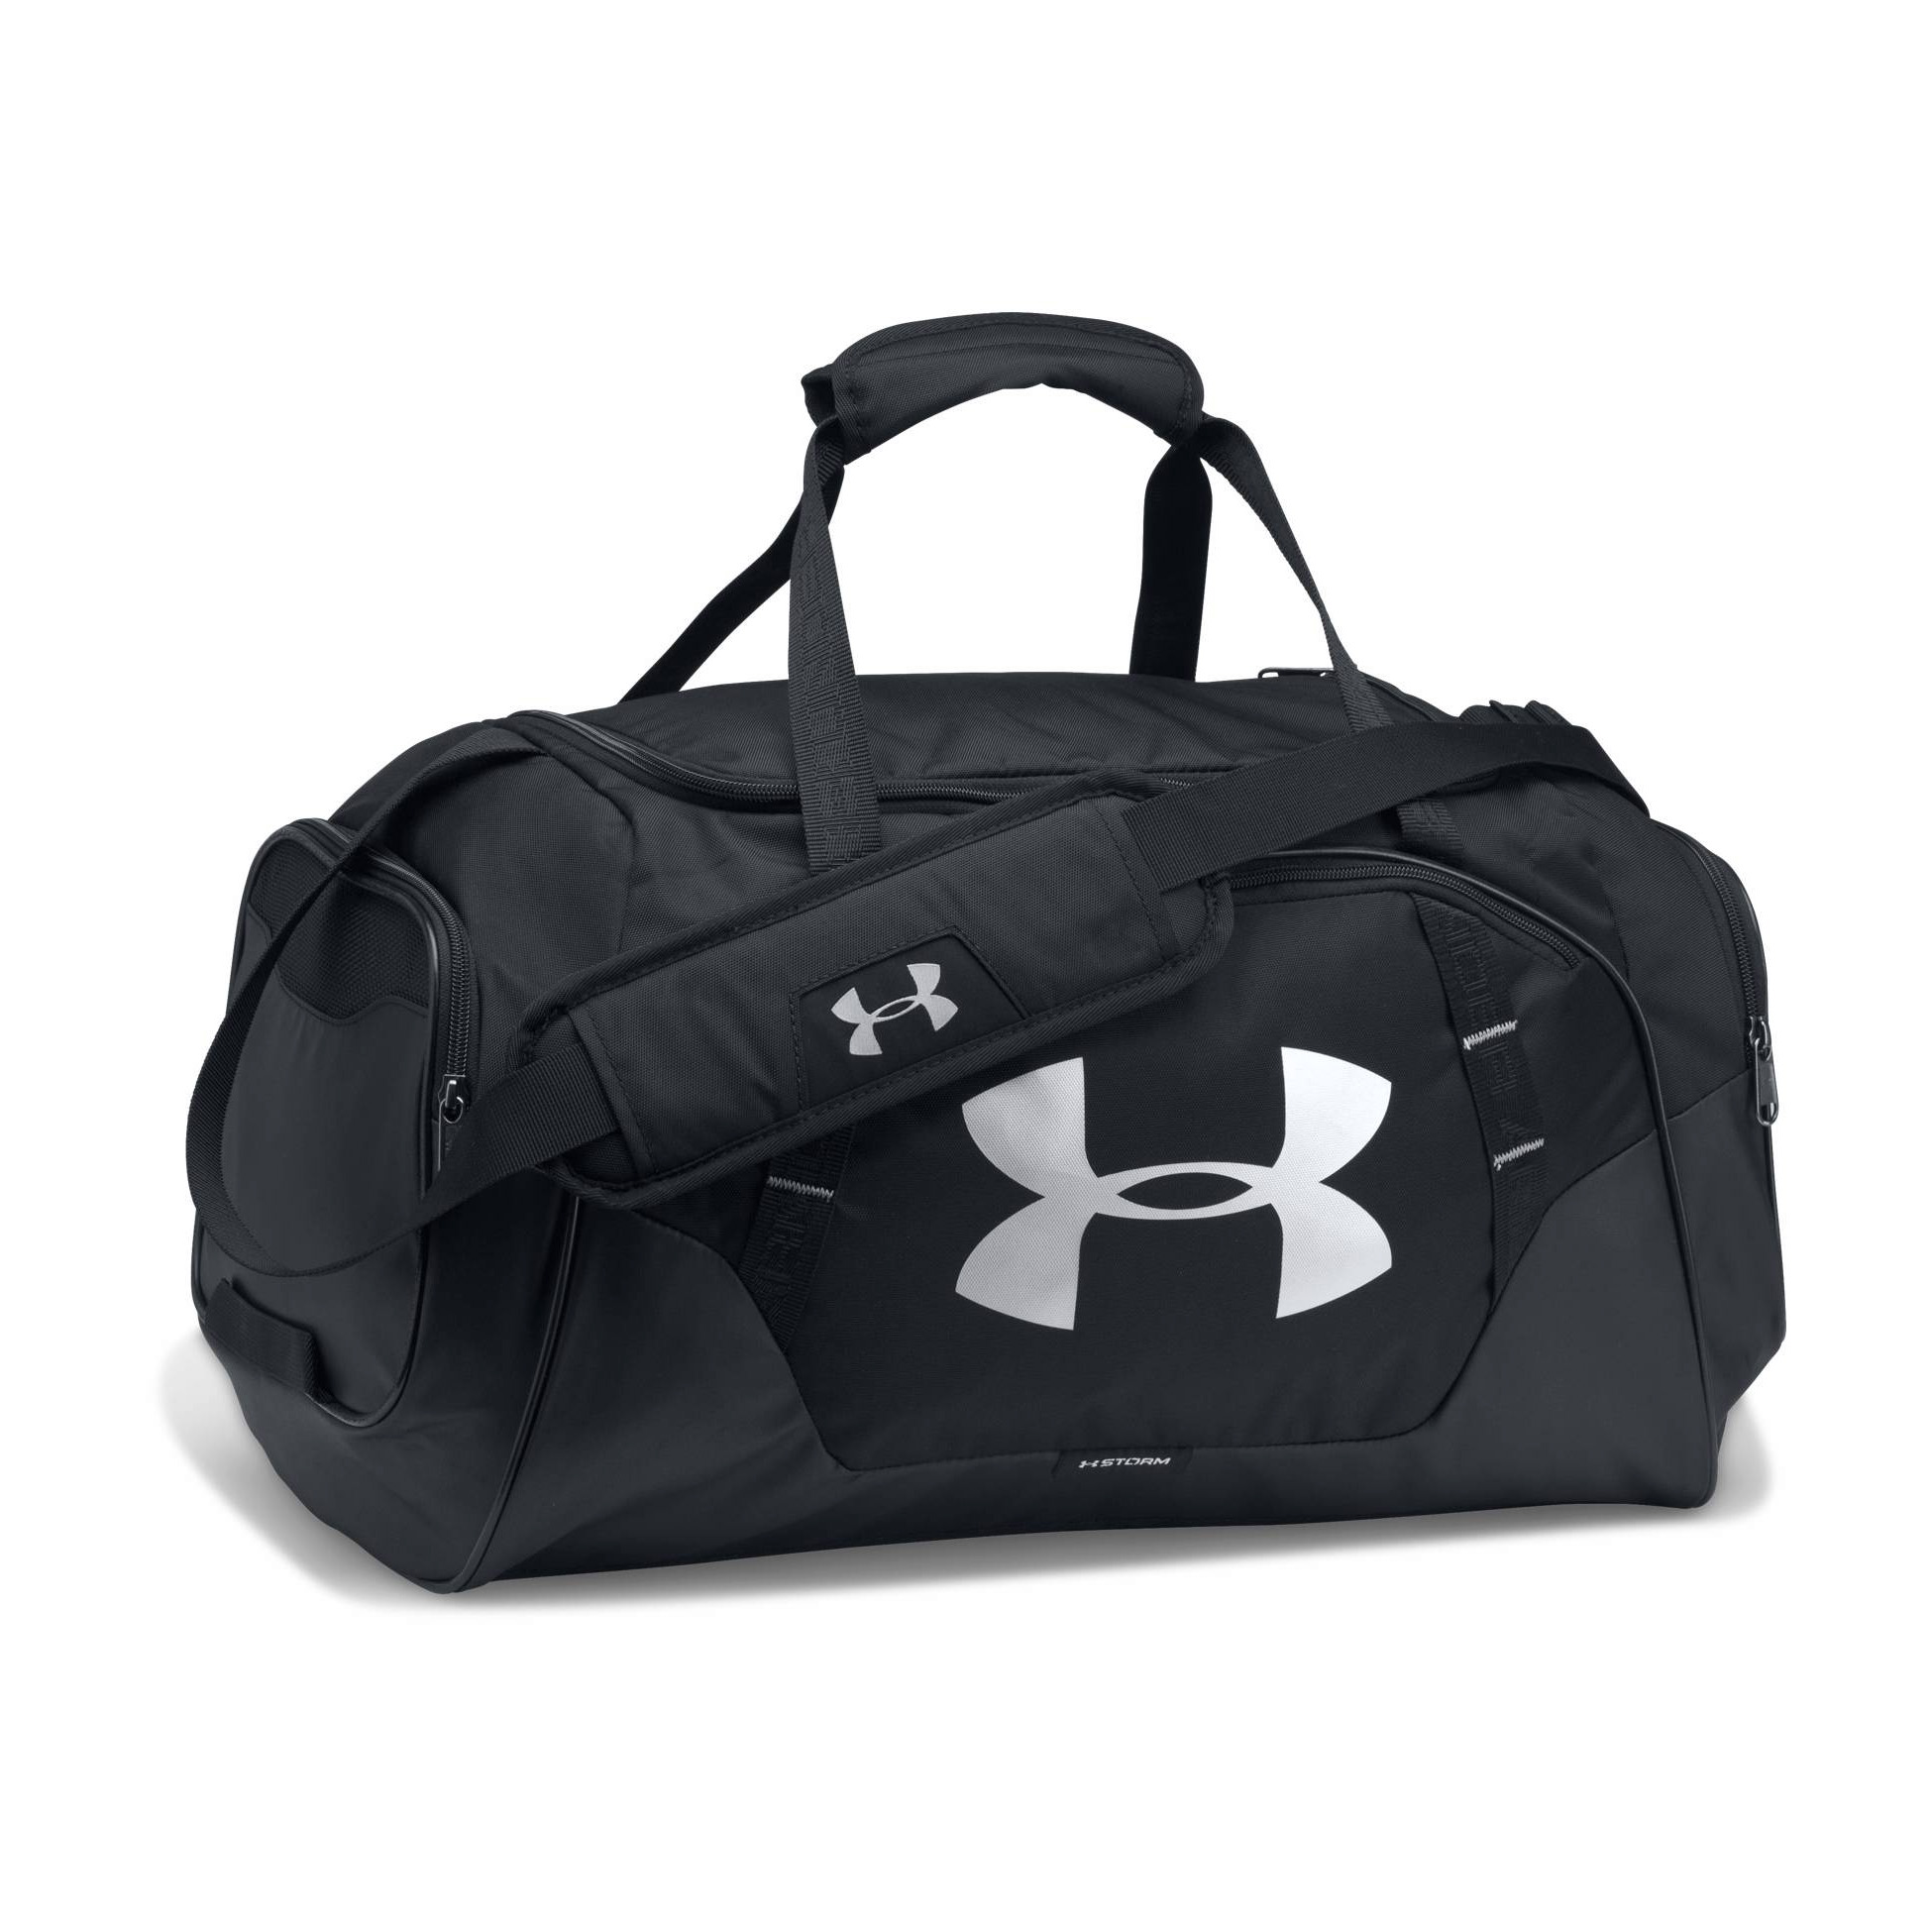 4b9f8c74b5 Details about Under Armour Storm Undeniable 3.0 Small Duffel Sports Bag -  Black